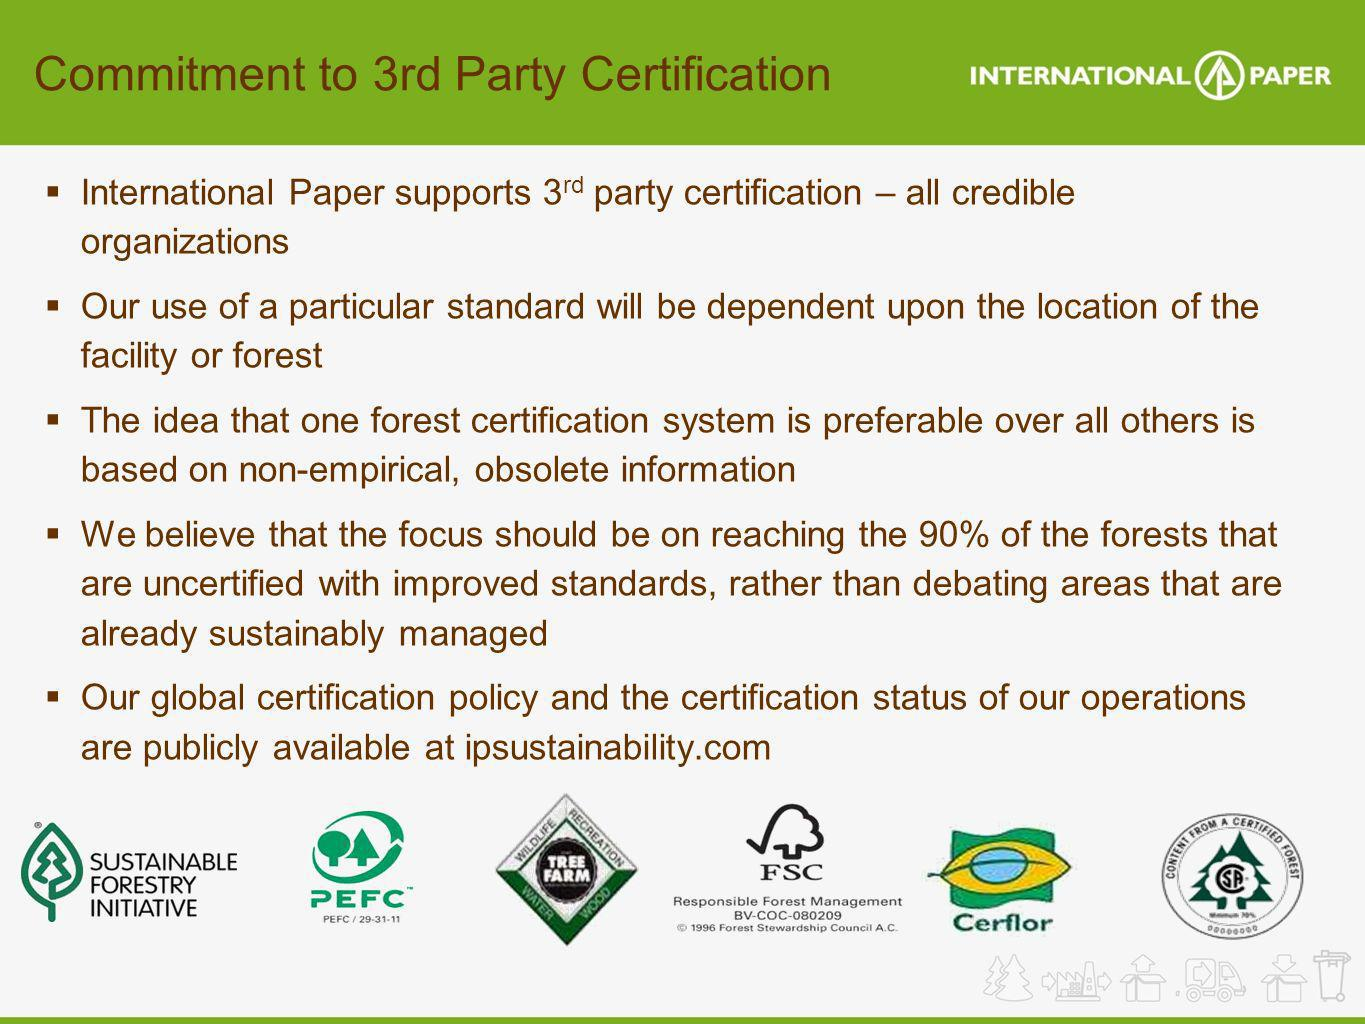 Commitment to 3rd Party Certification